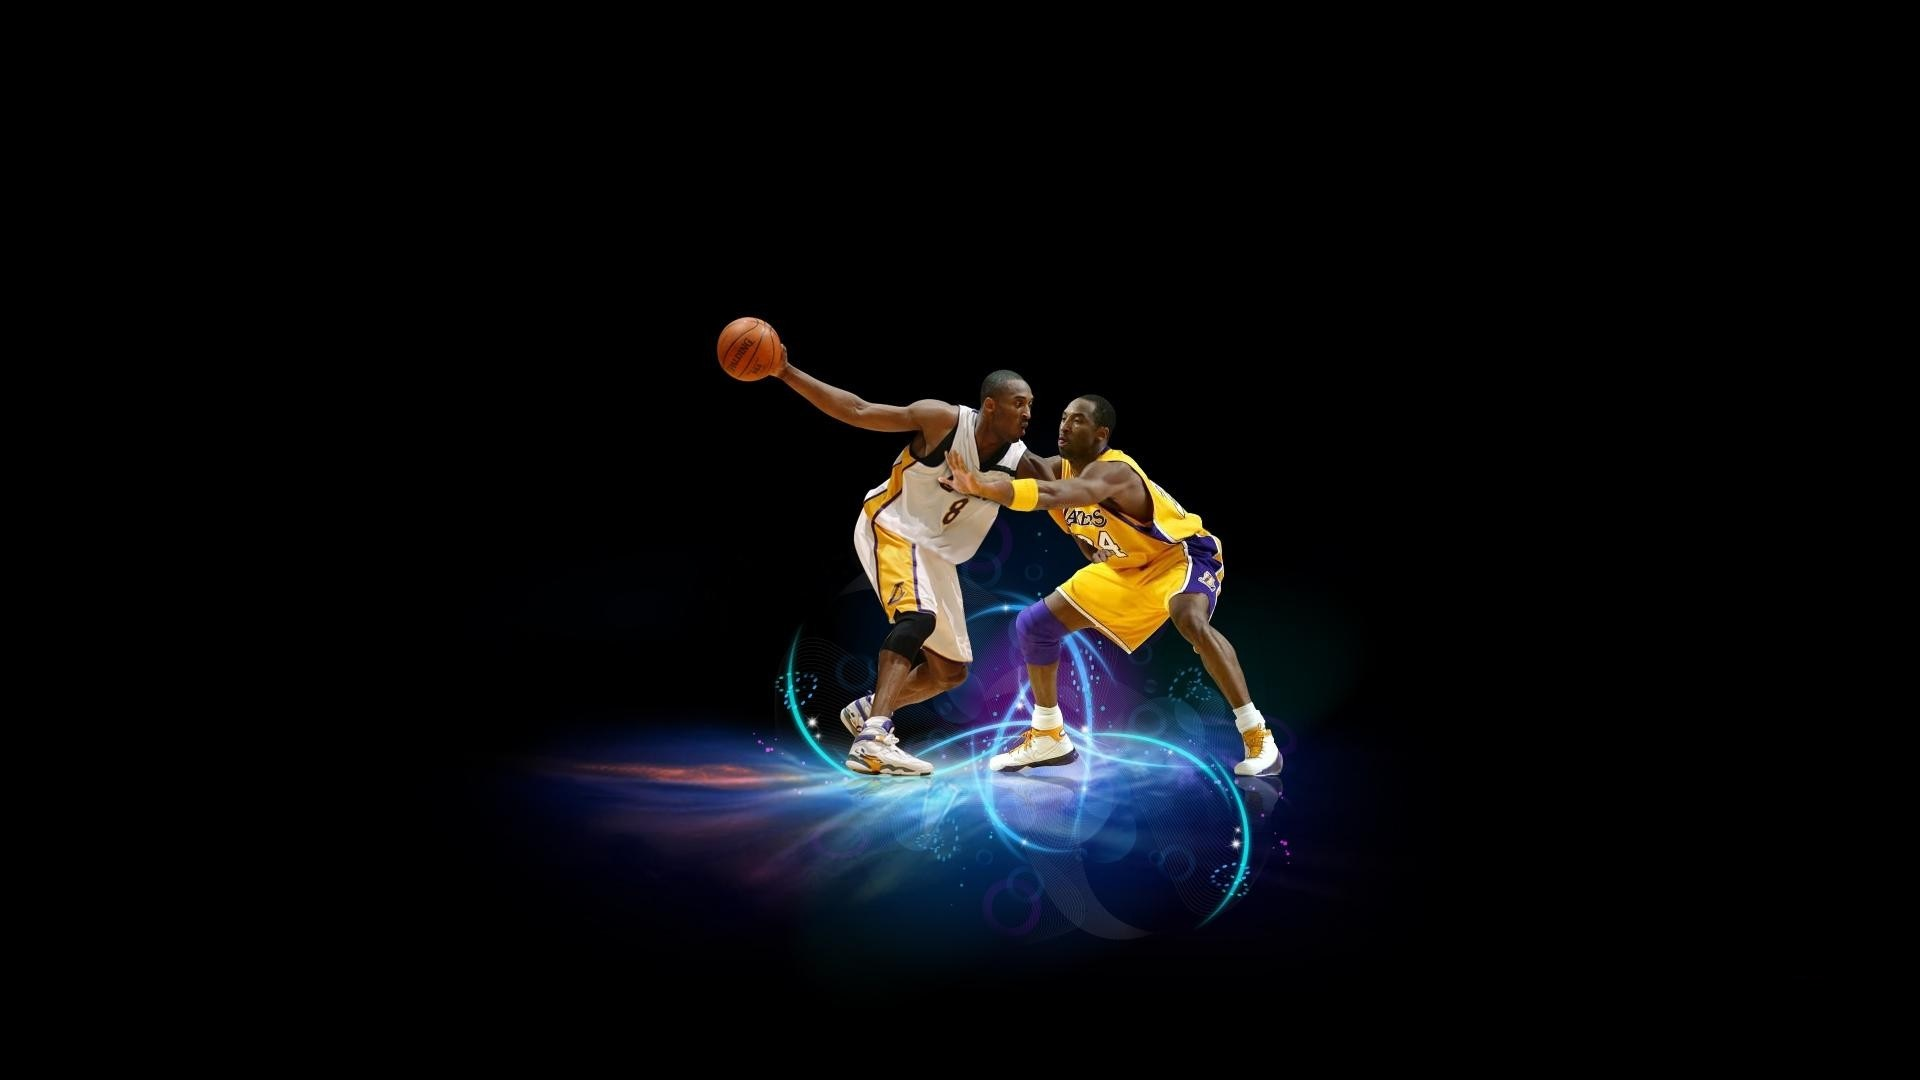 sports basketball wallpaper 1080x1920px basketball hd wallpapers sport 1920x1080